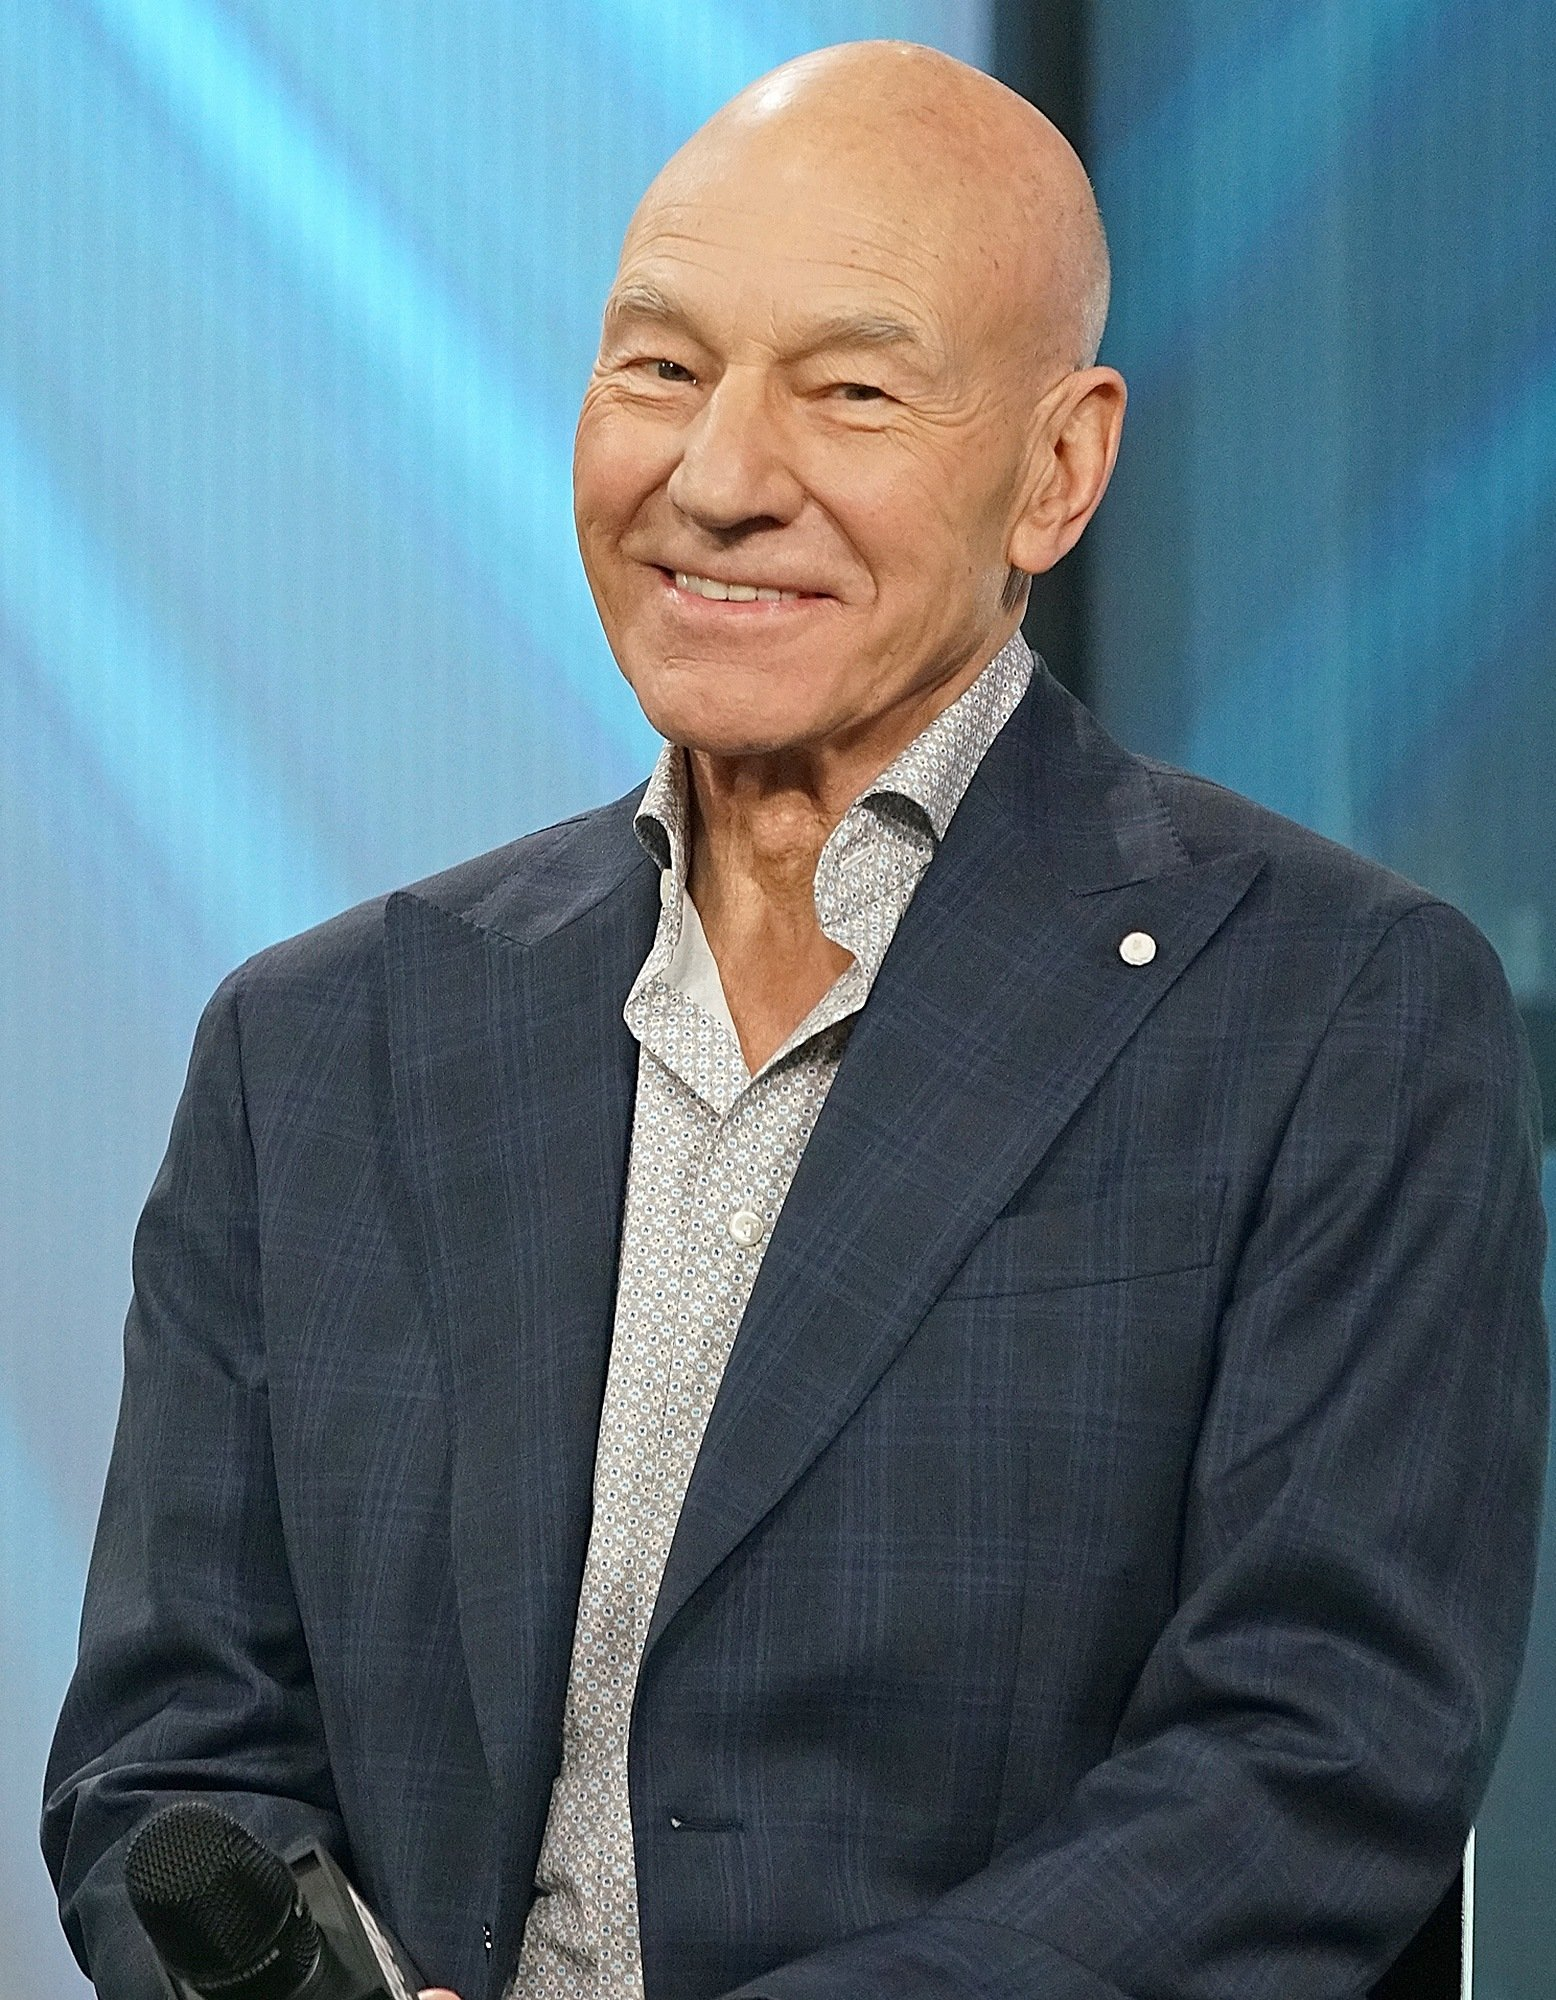 patrick stewart b6fbfe84 364e 4a23 85ed c83f4d3e435e 24 Things You Didn't Know About The X-Men Films